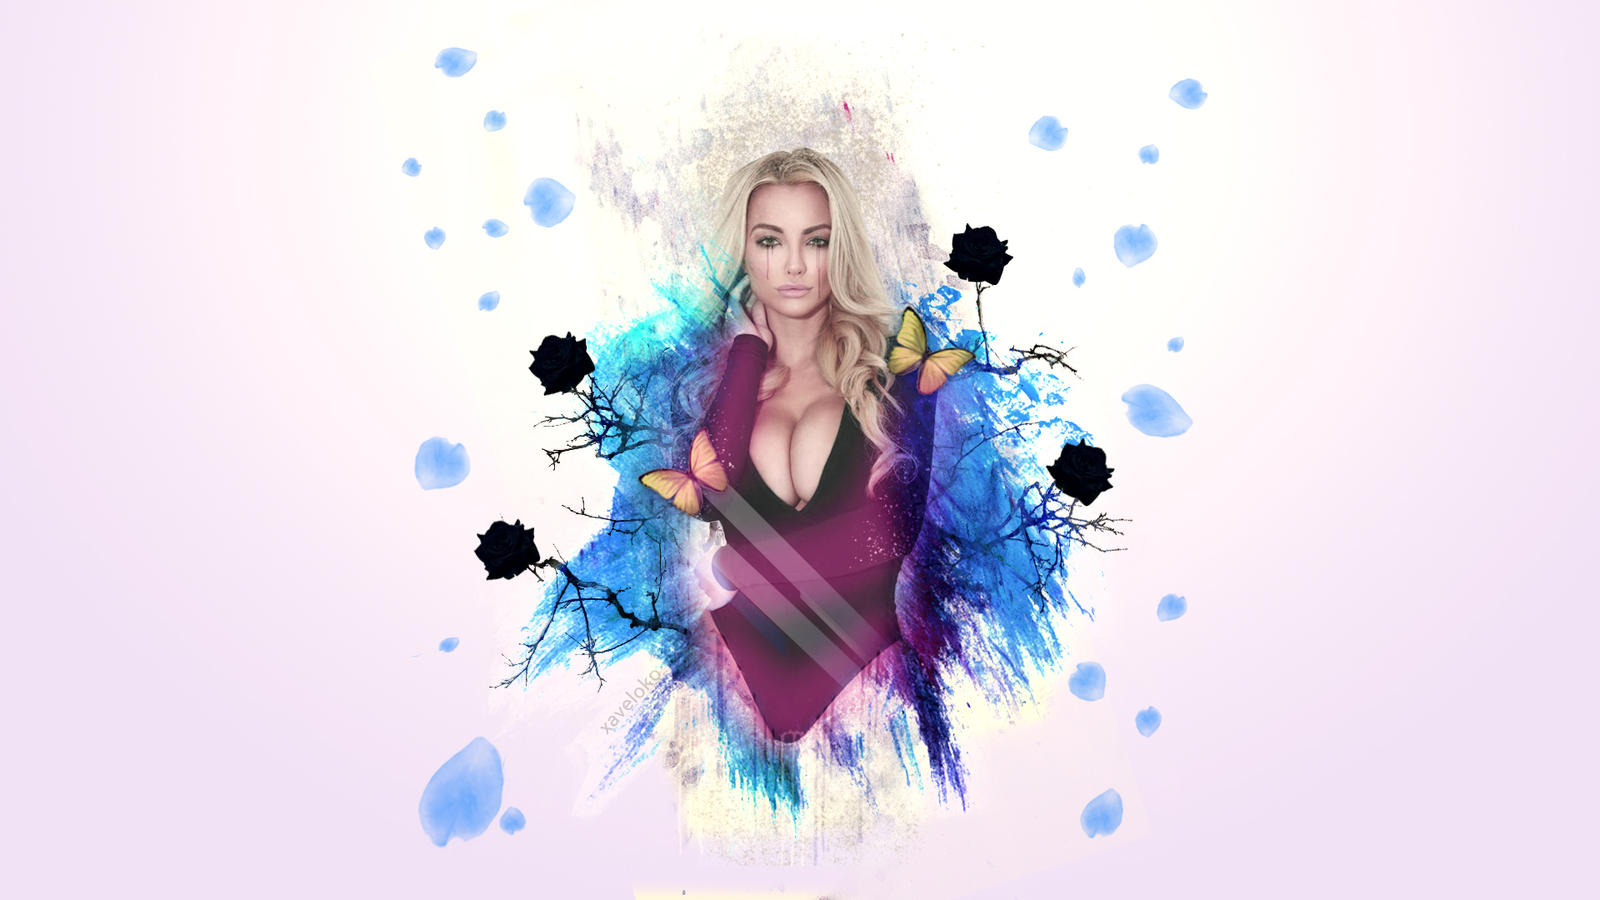 Lindsey Pelas Abstract Art Wallpaper by xavierlokollo